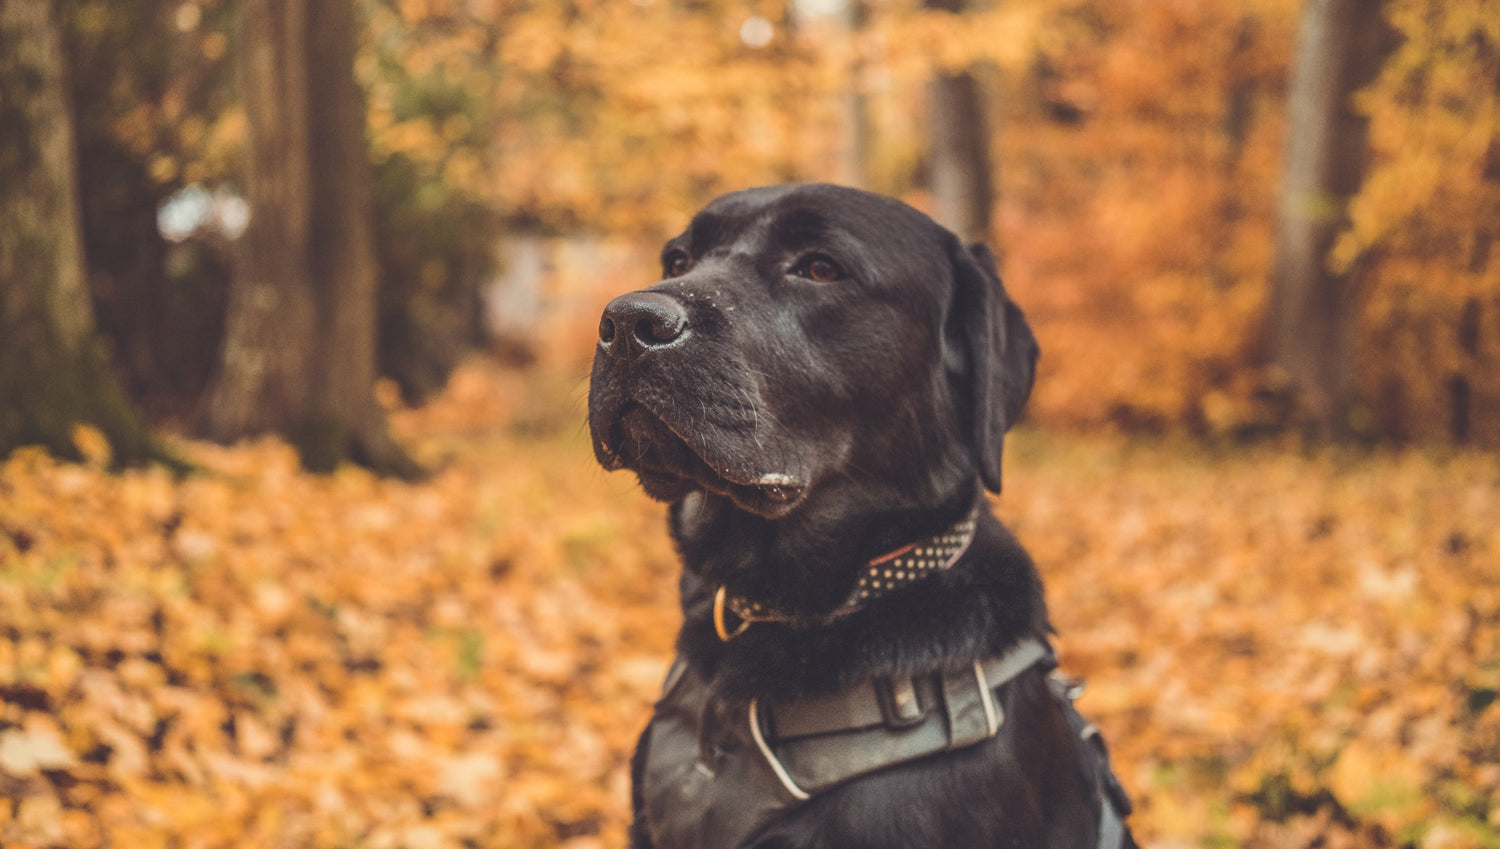 black labrador sitting in forest surrounded by orange autumn leaves